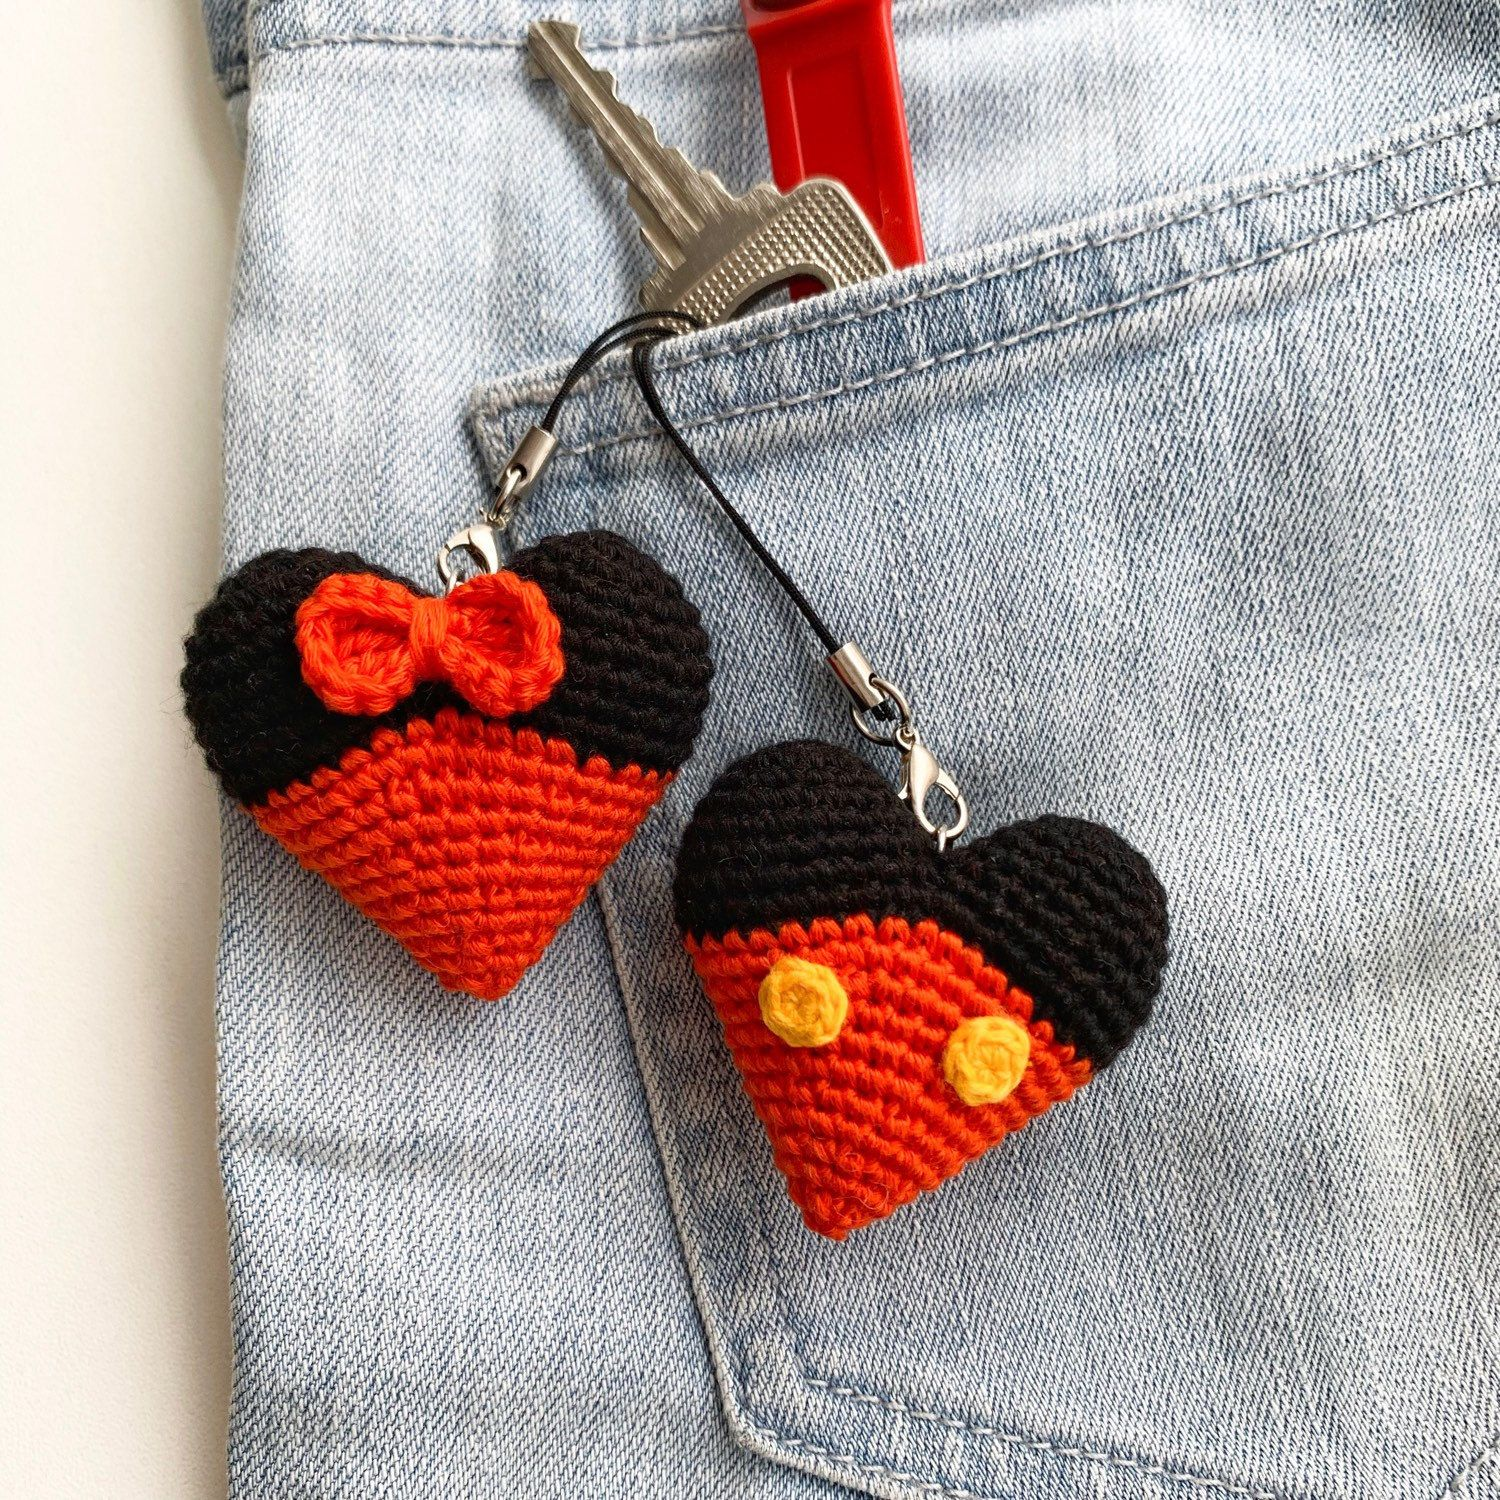 Mickey Mouse Heart Keyring Knitted Disney Minnie Mouse Key Chains Crochet Mickey Heart Bag Charm